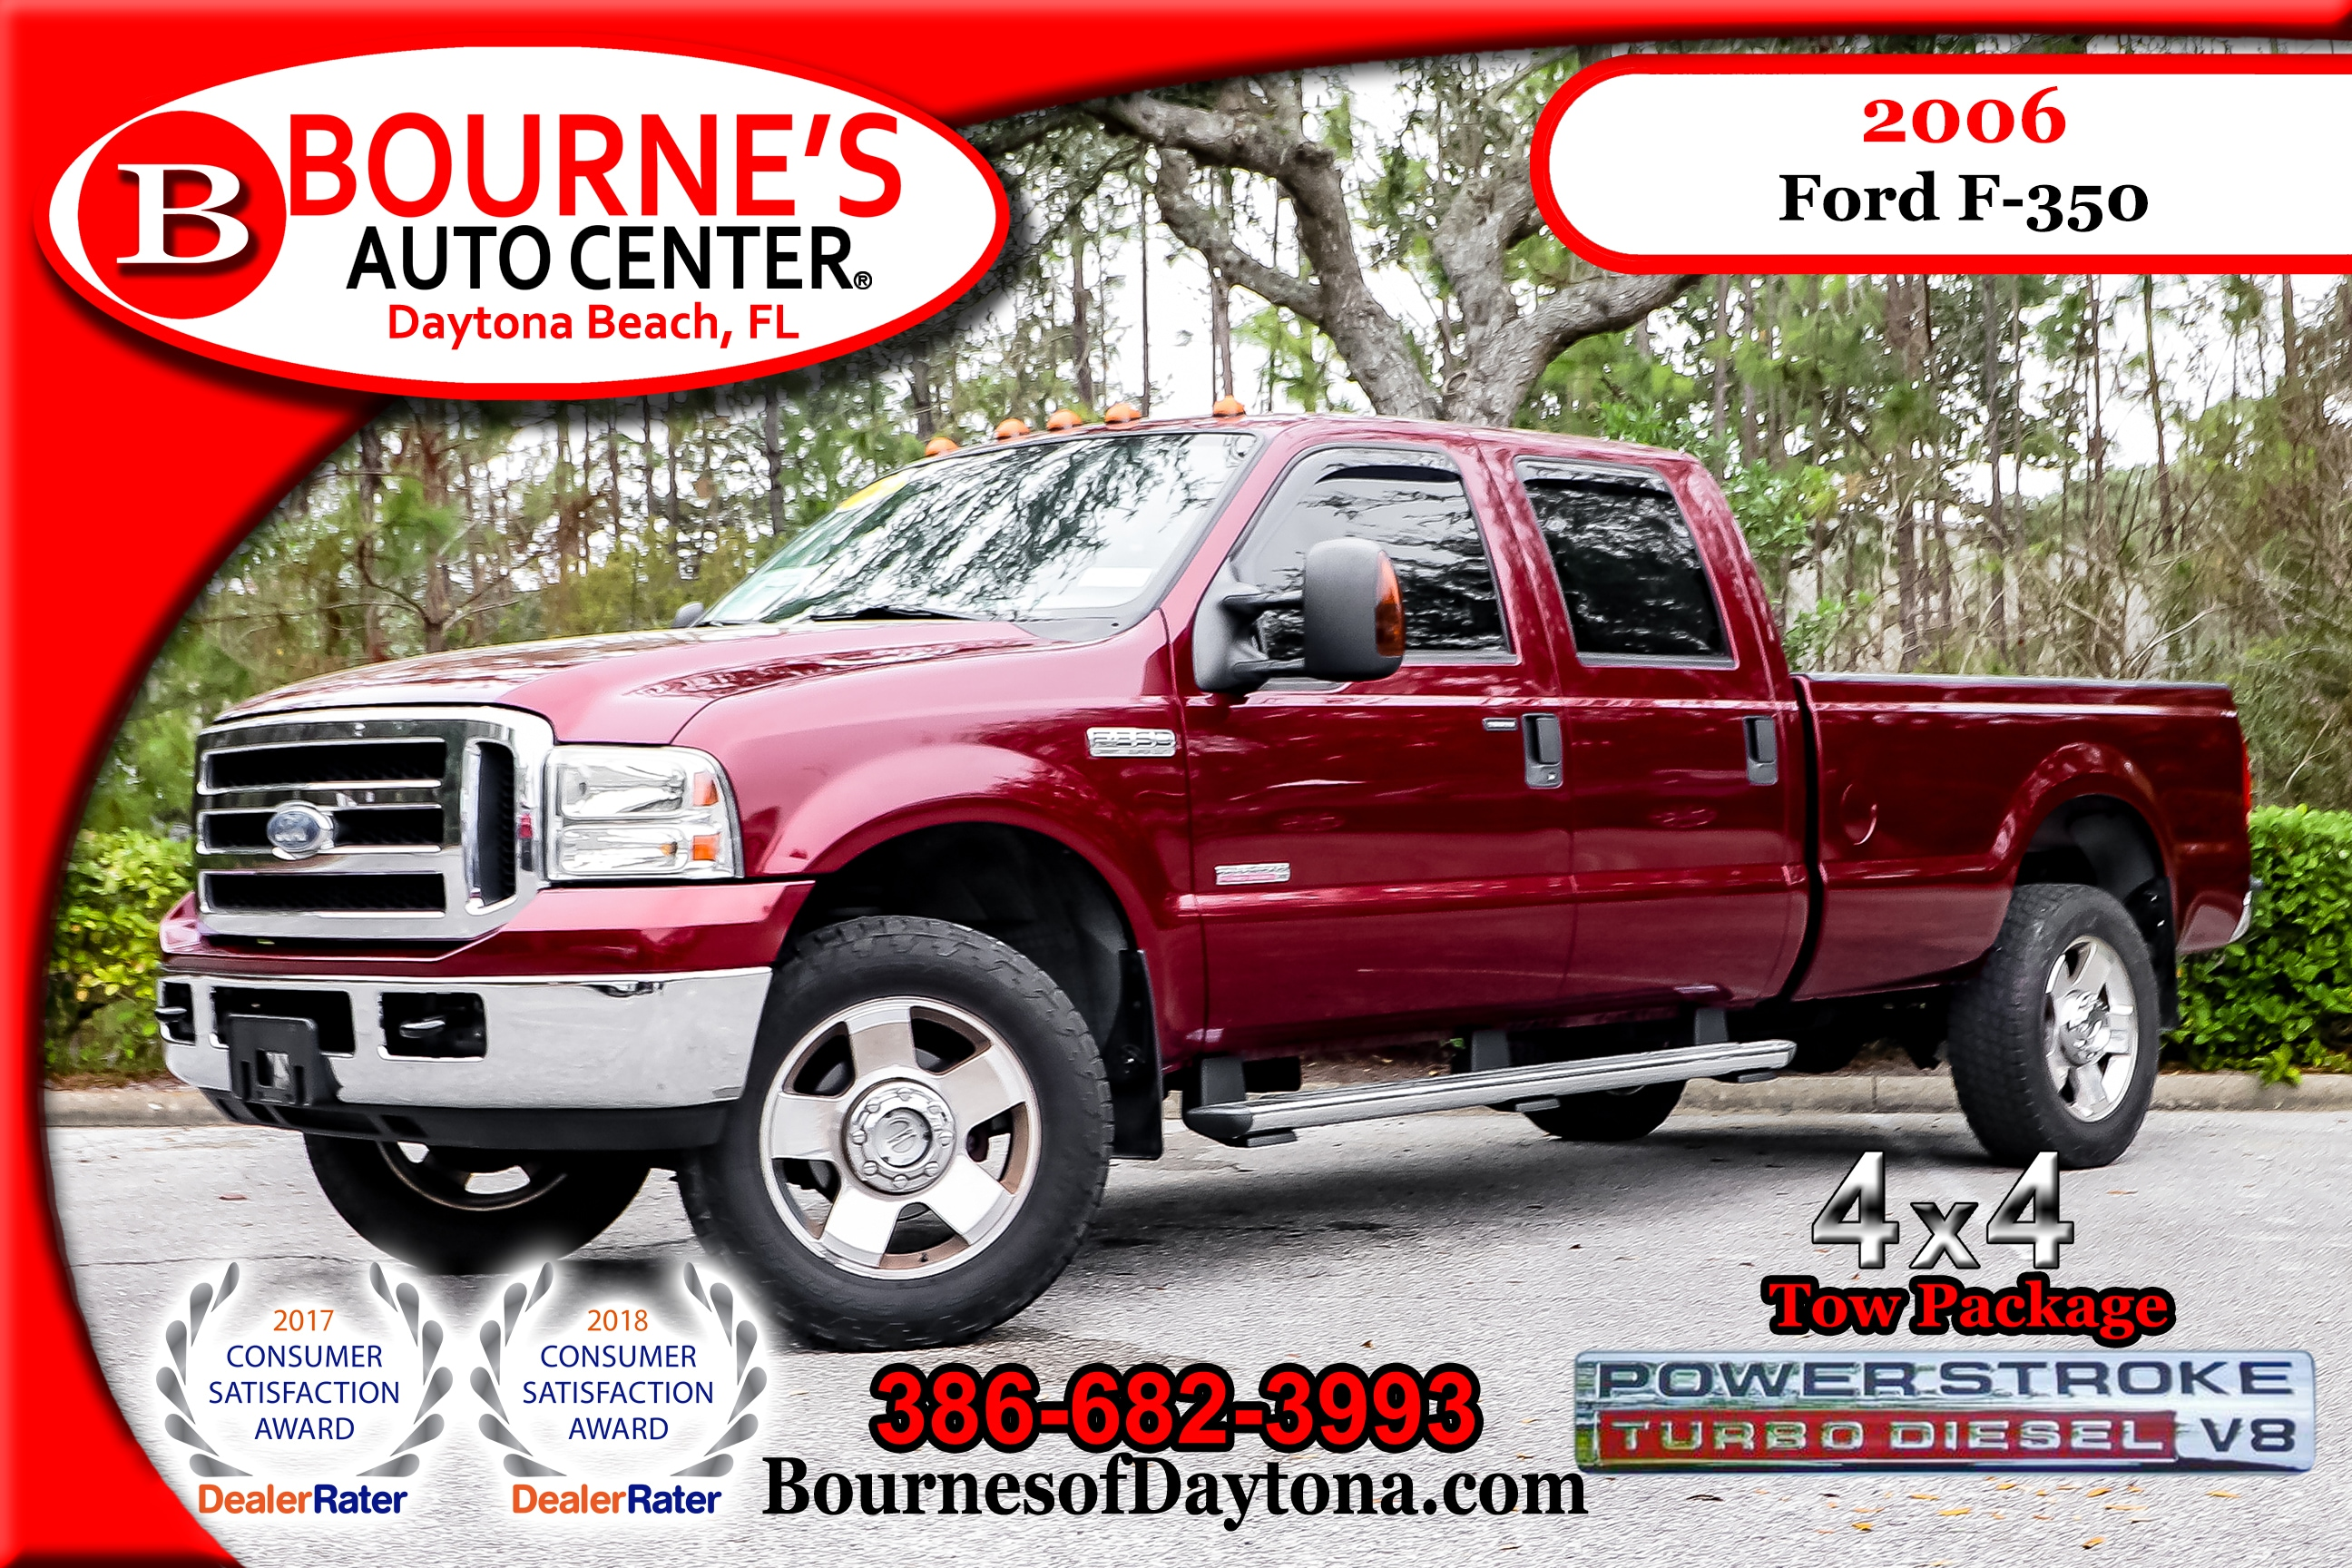 2006 Ford F-350 Lariat 4x4 Turbo Diesel Tow Package Truck Crew Cab